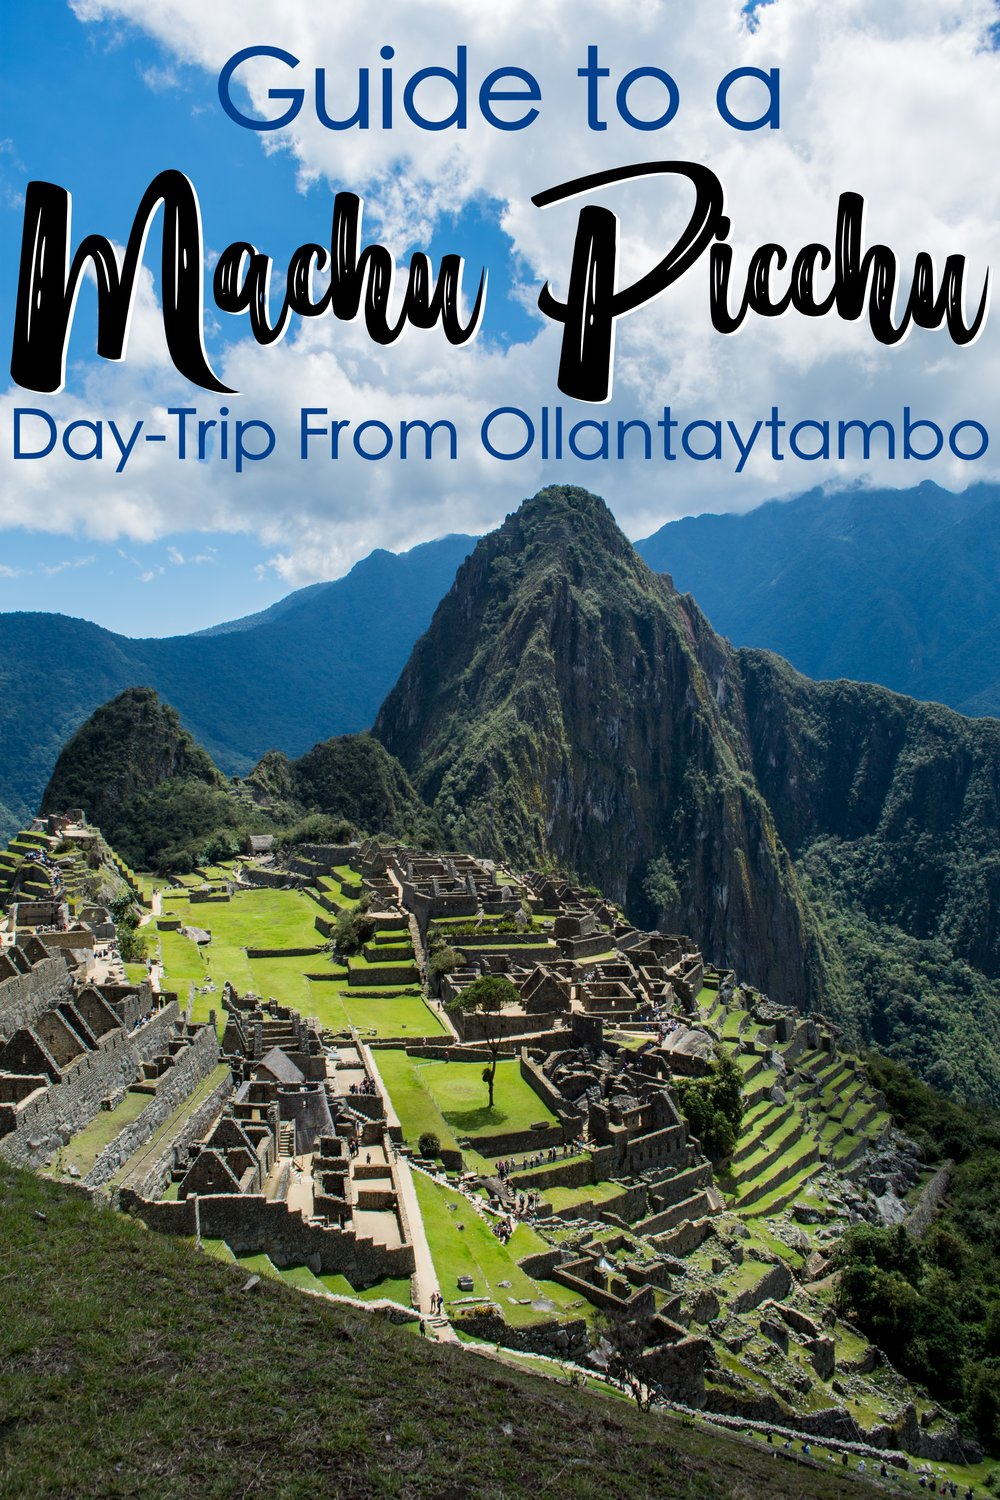 Machu Picchu can be visited as a day trip from Cusco or the Sacred Valley or you can stay overnight in Machu Picchu town. #MachuPicchu #Peru #Ollantaytambo #DayTrip